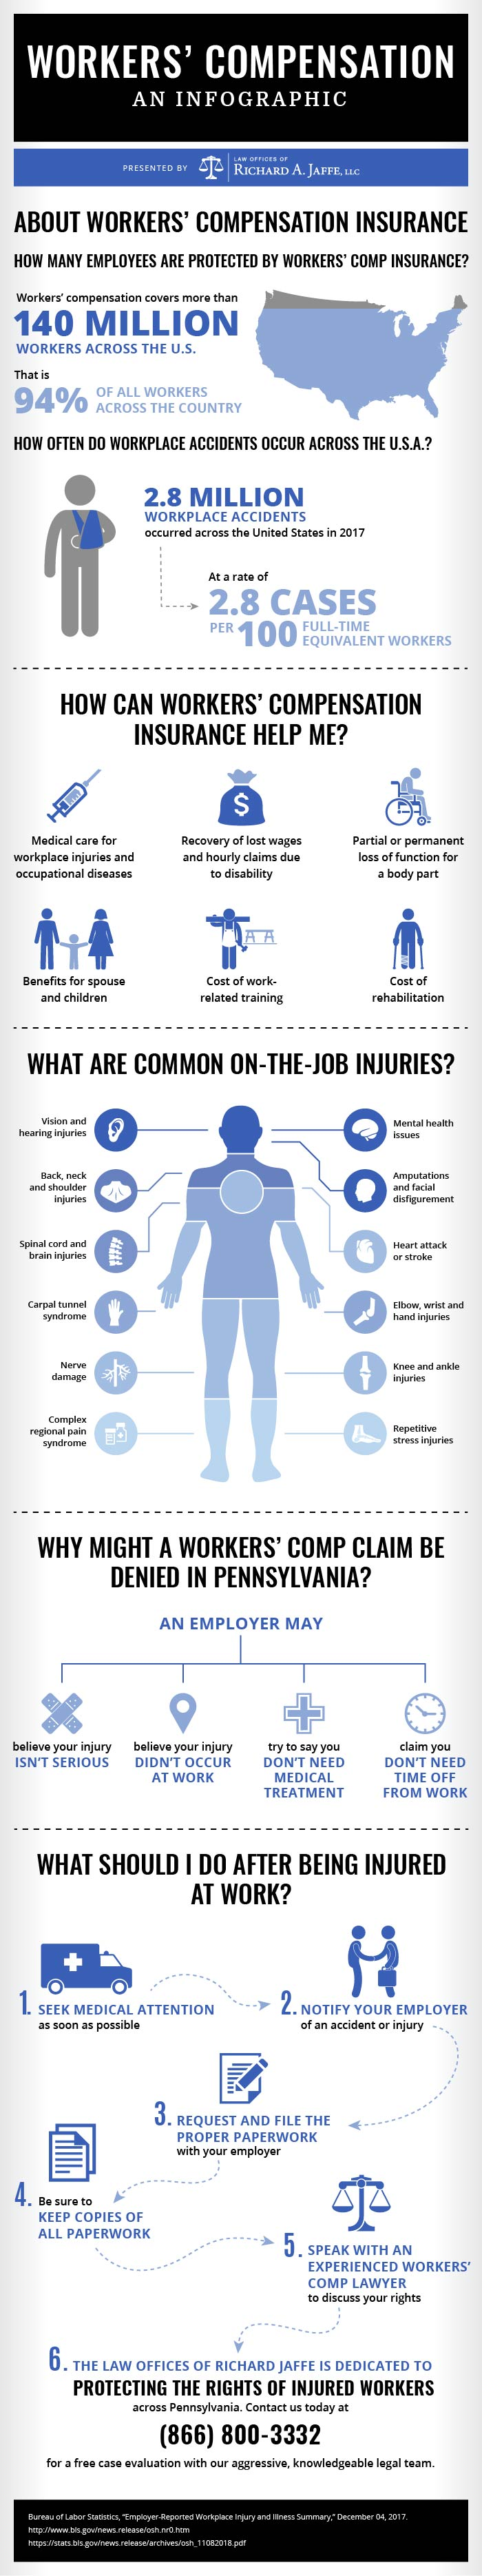 Jaffe Workers' Compensation infographic